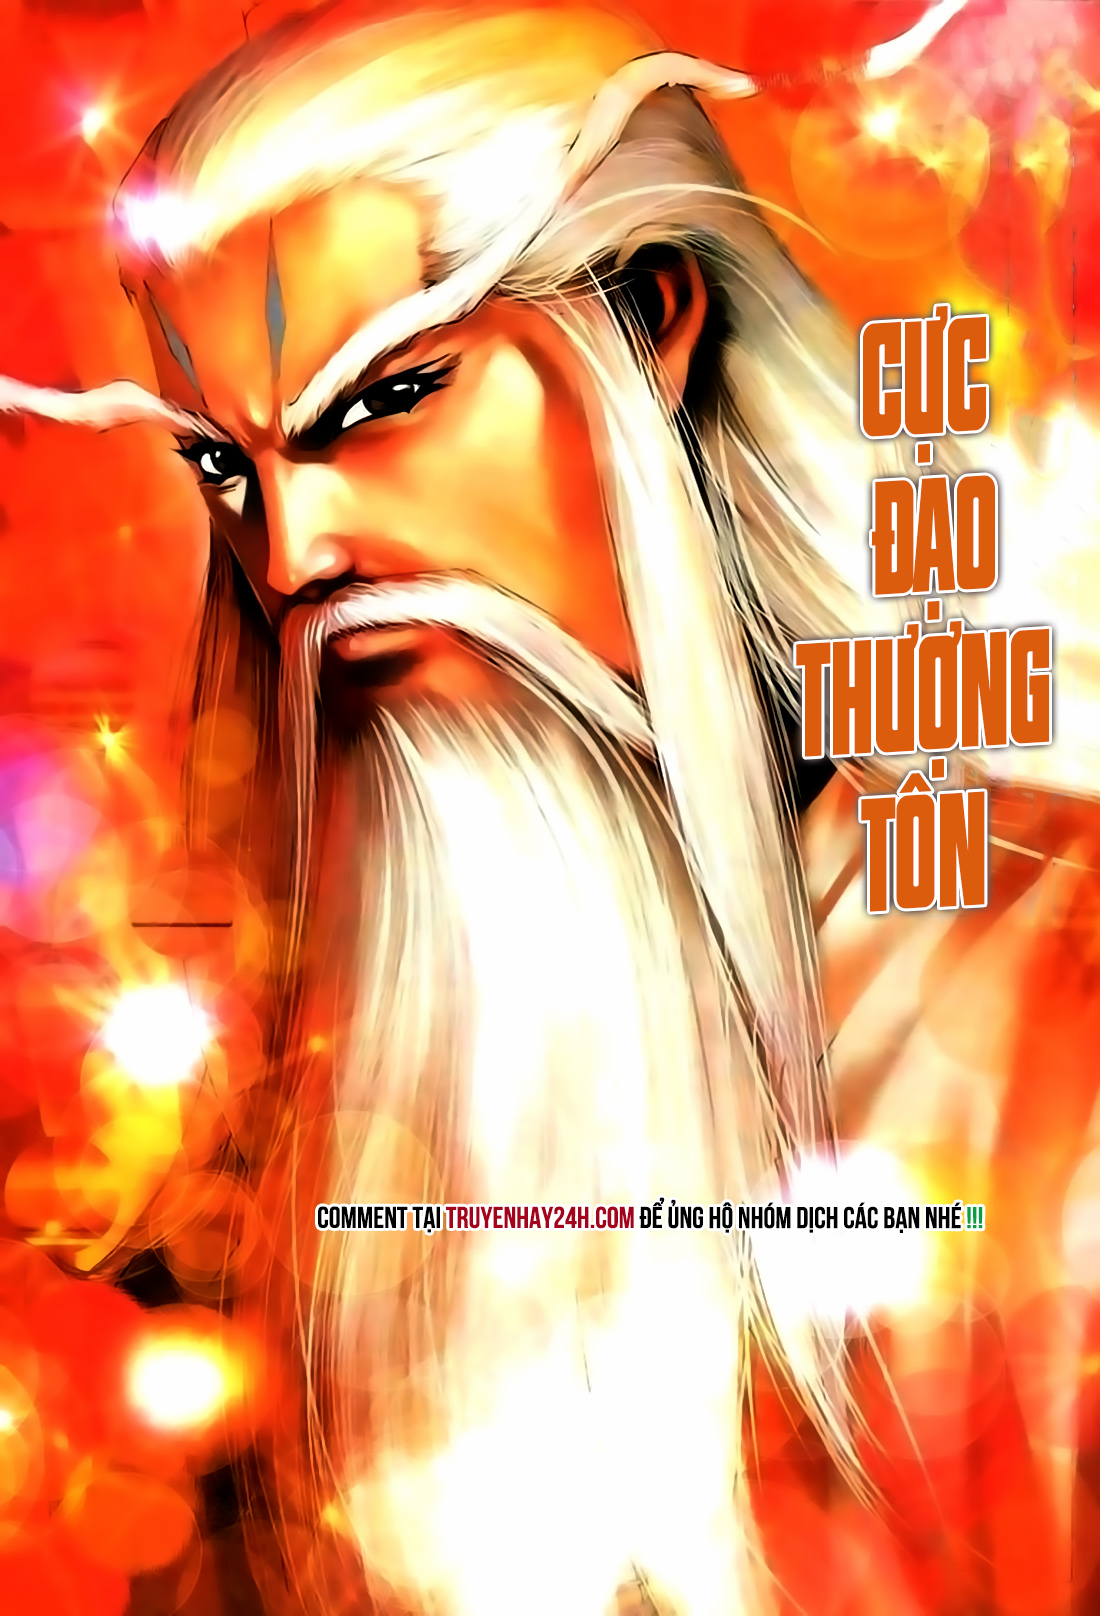 Song hùng kỳ hiệp chapter 213